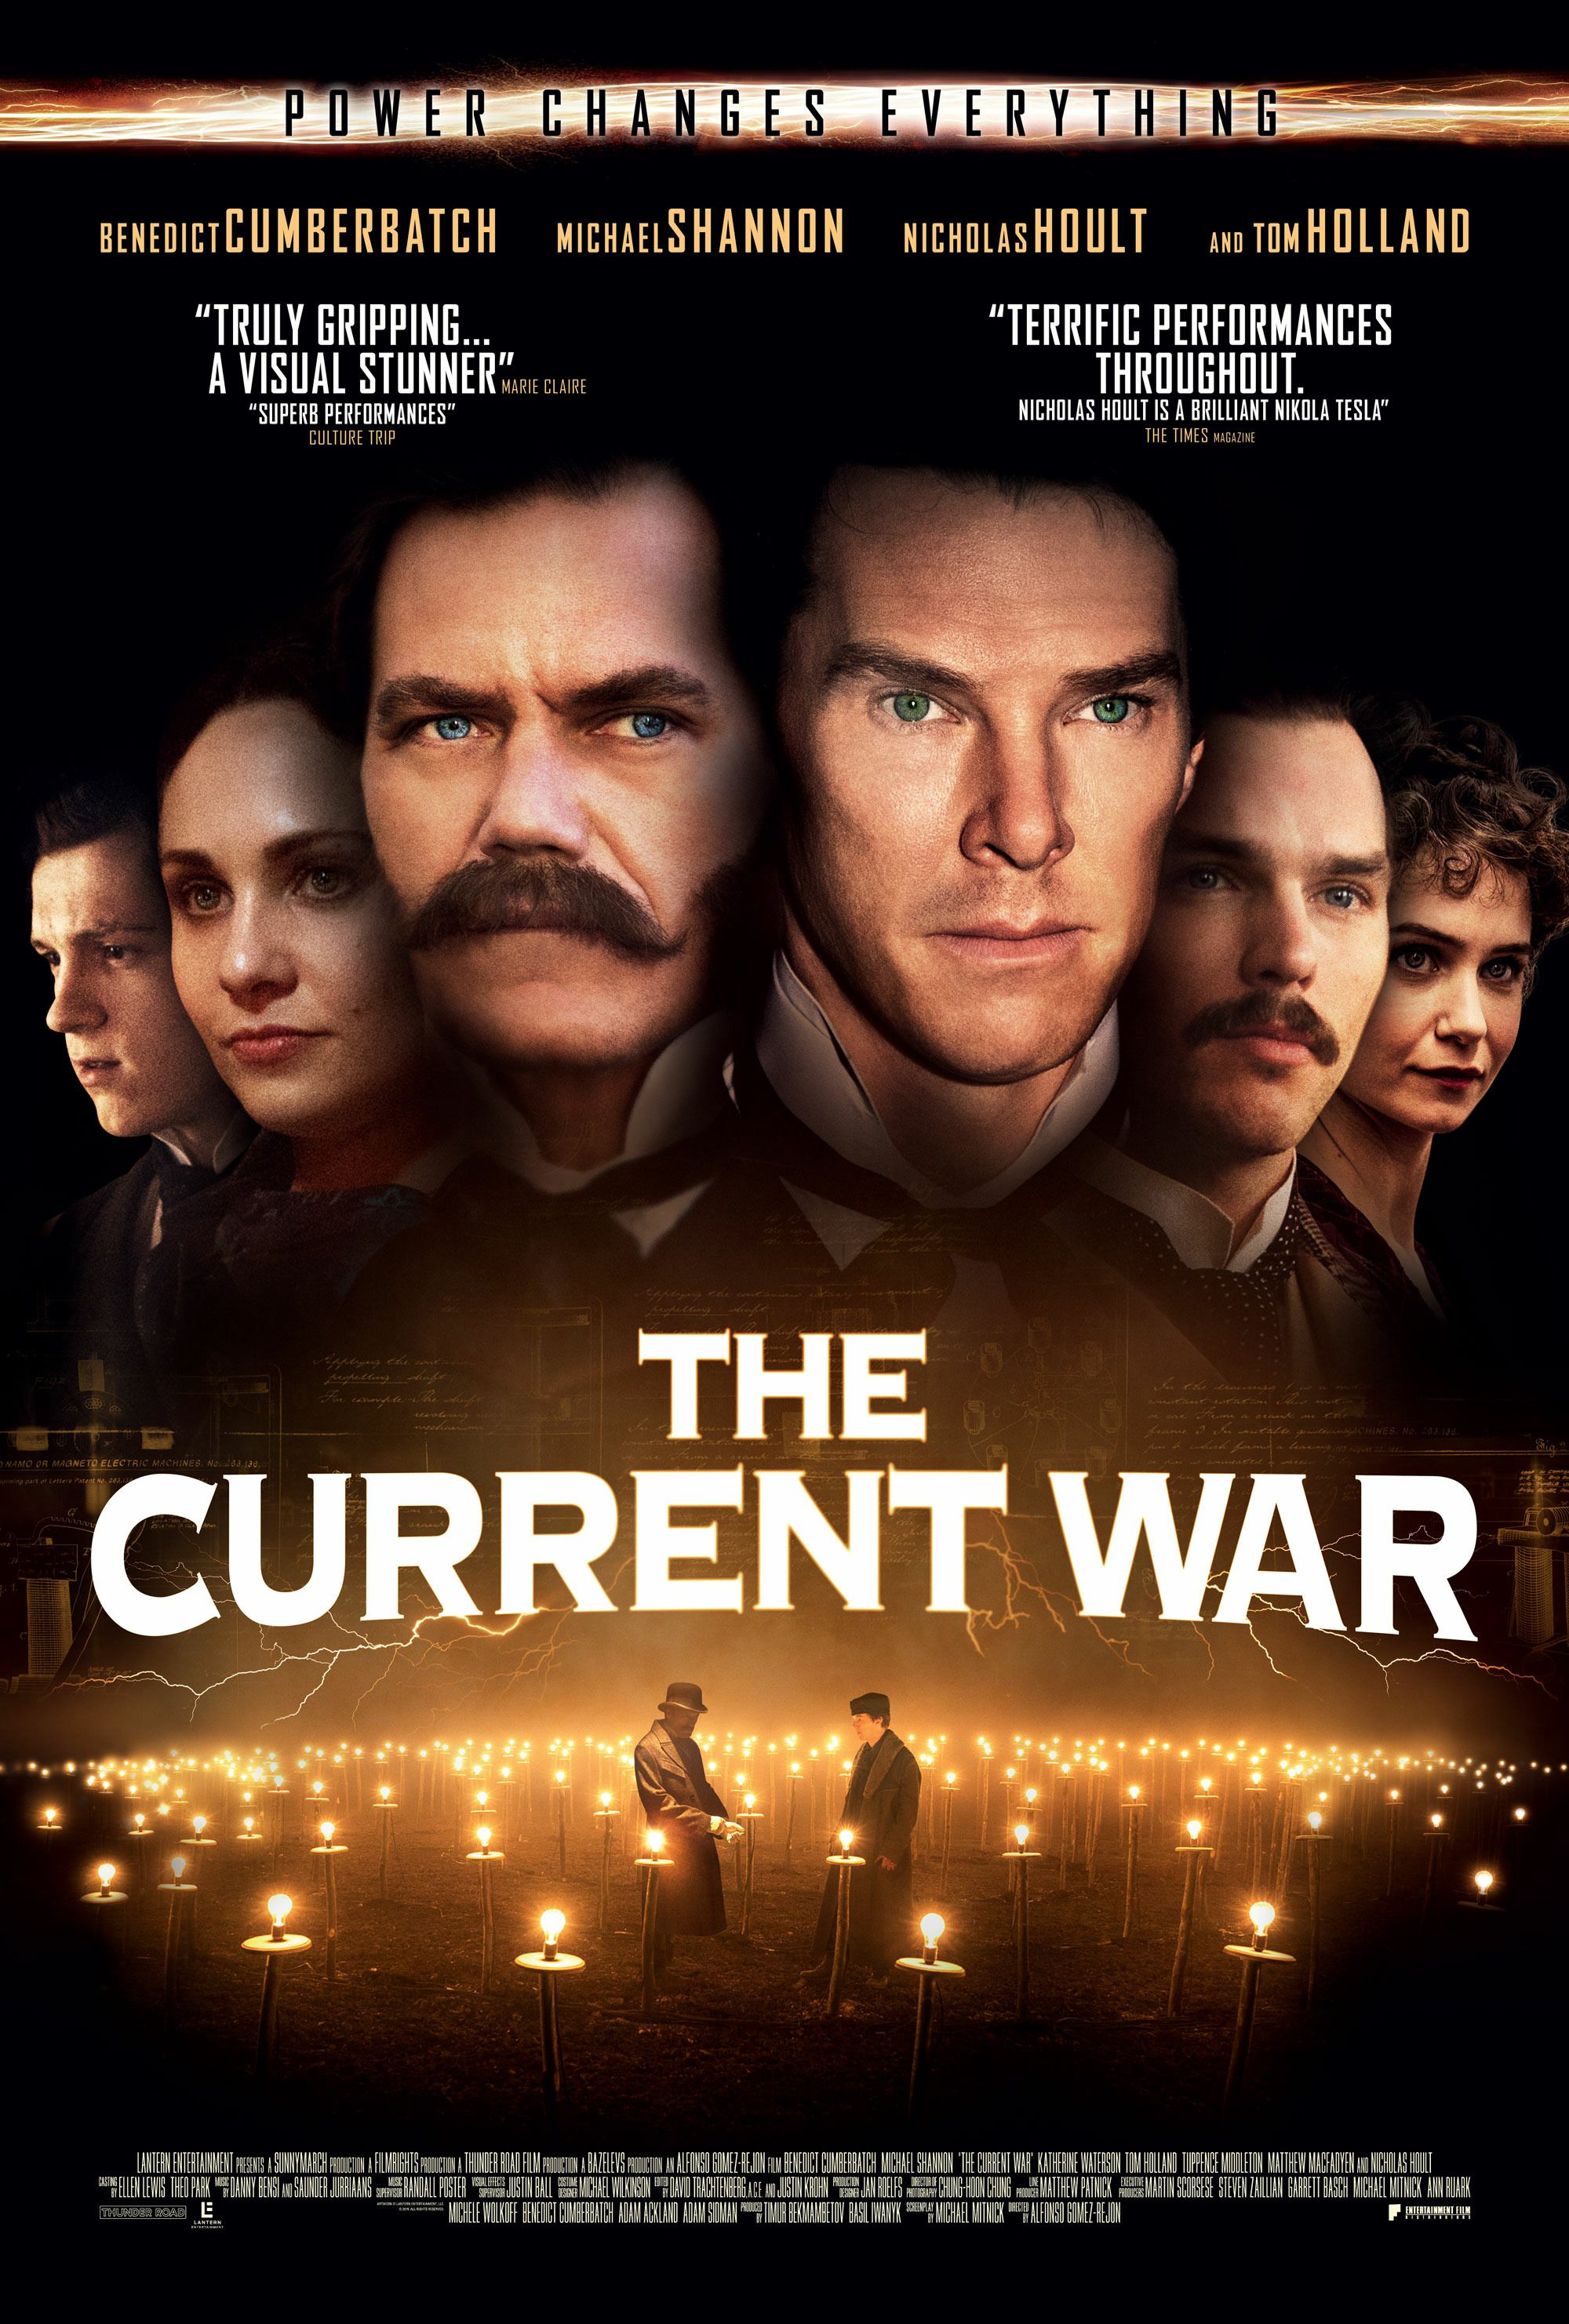 The Current War 2019 Benedict Cumberbatch, Michael Shannon, Nicholas Hoult - poster